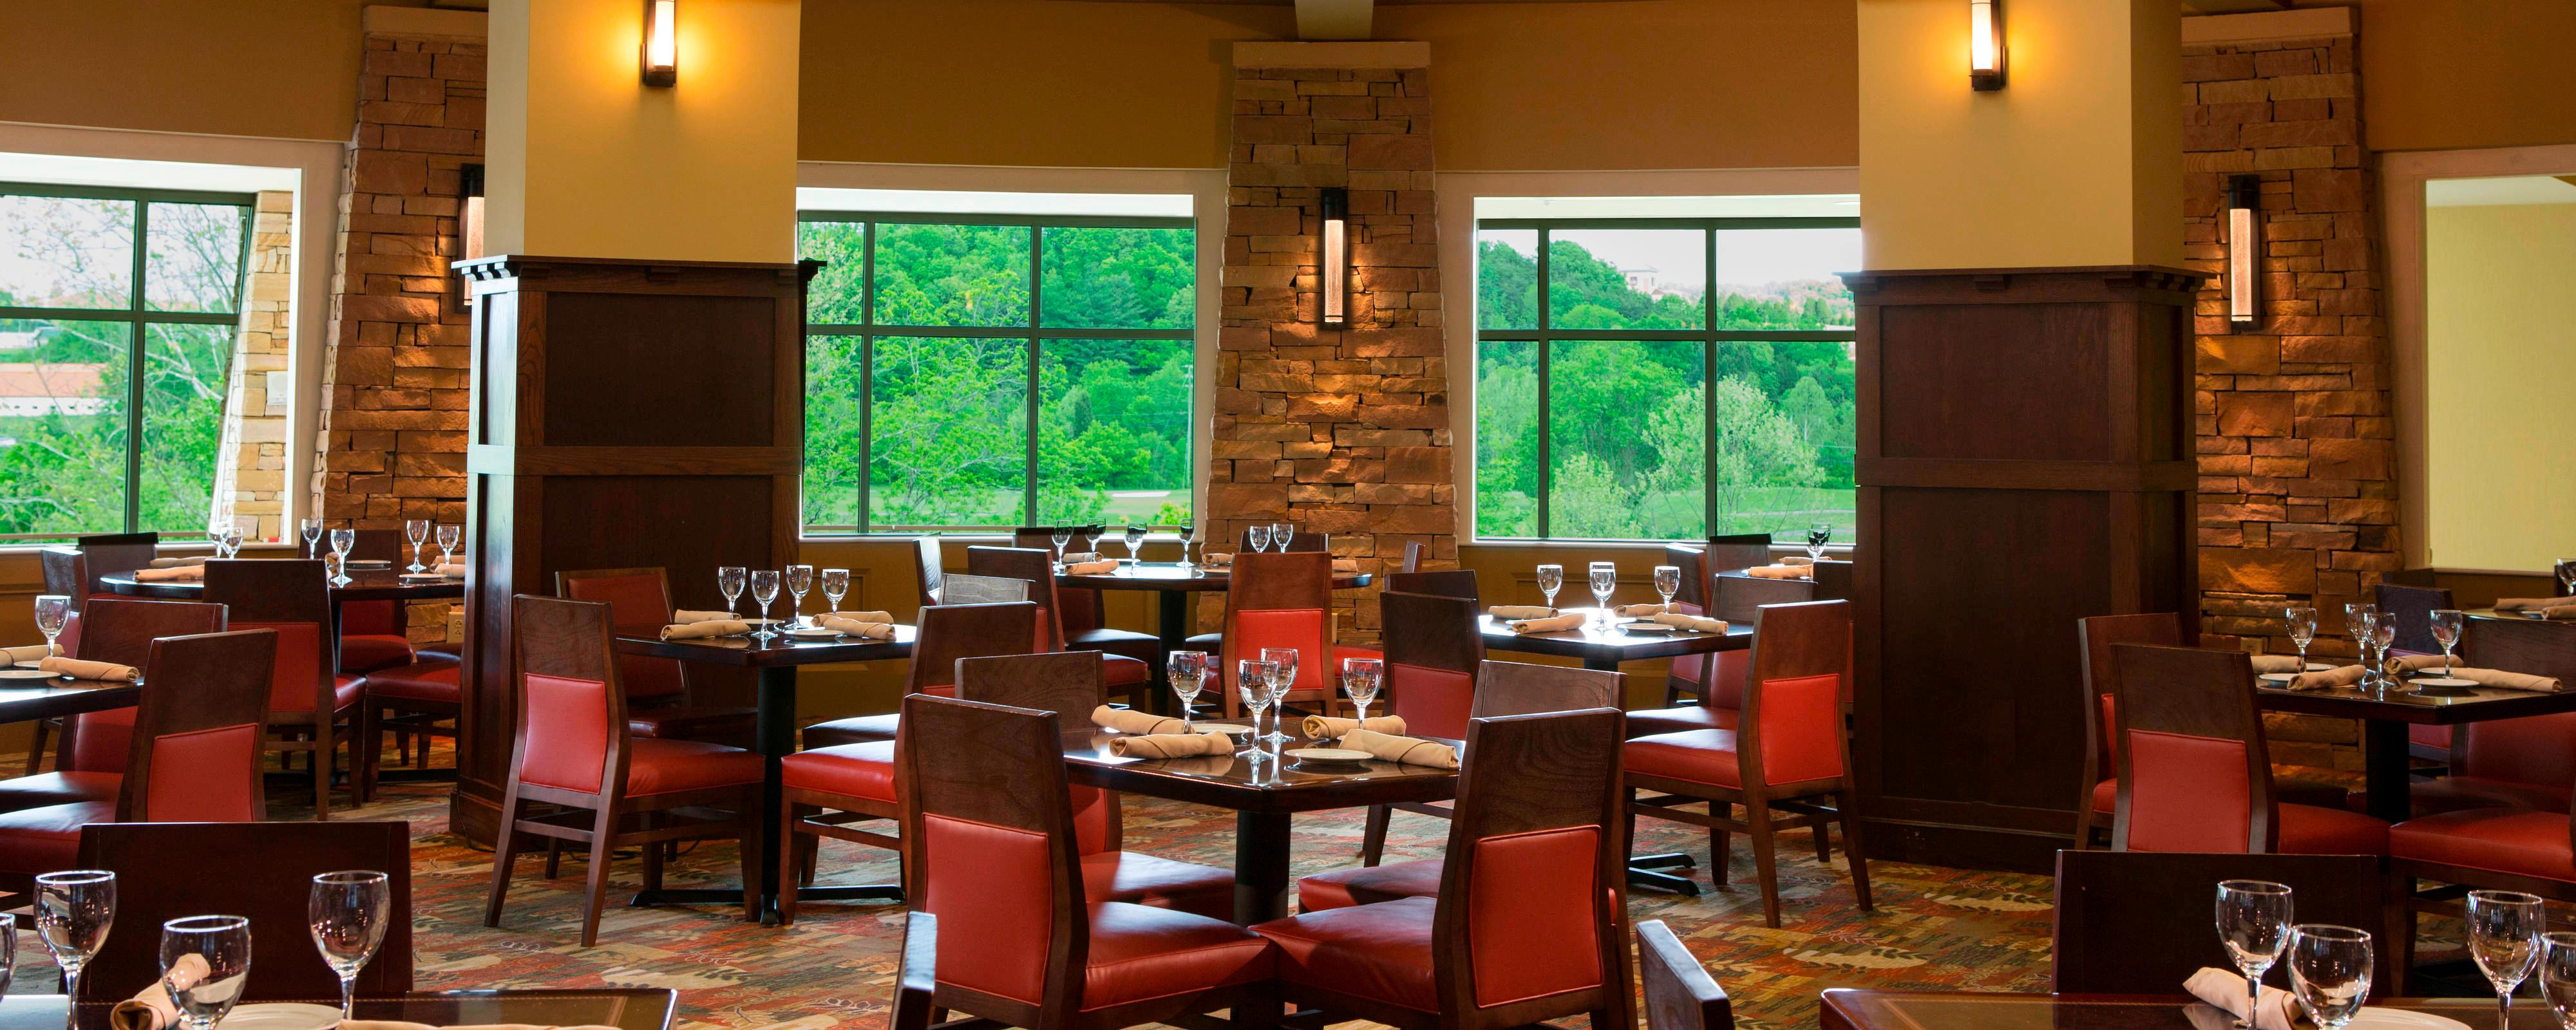 Kingsport Tn Restaurant Dining | Meadowview Conference Resort within Meadowview Convention Center Schedule Events In 2021